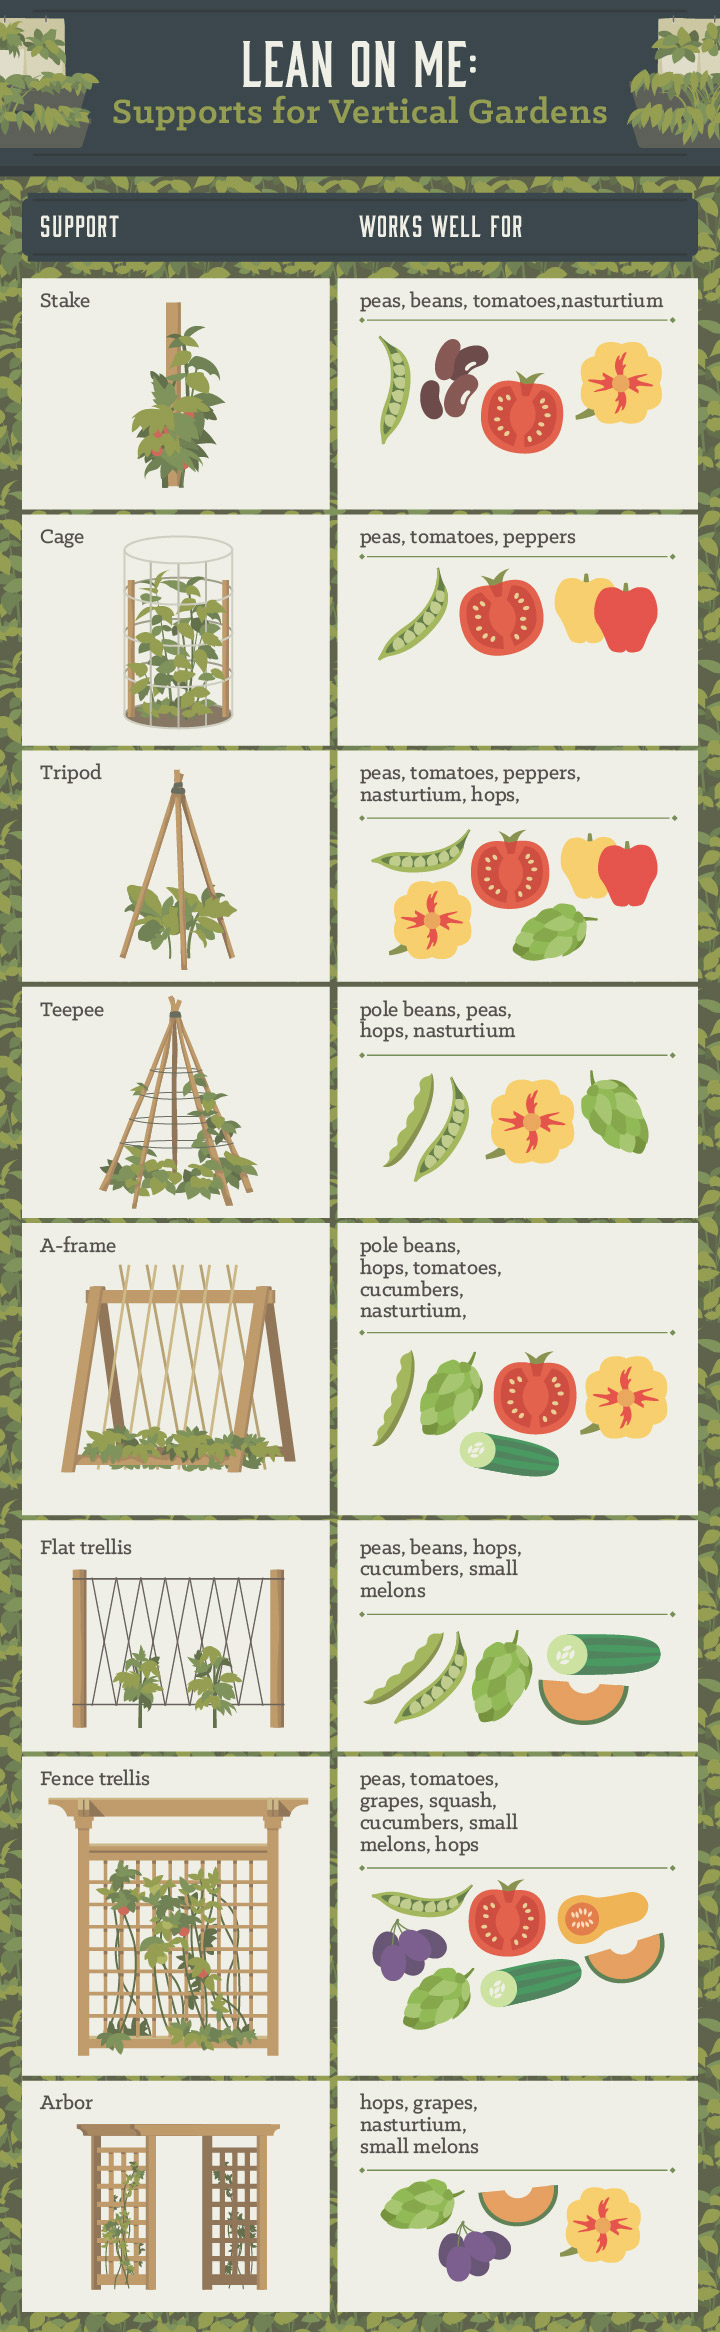 Invigorating To Imitate Ir Famous Three Sisters Vertical Gardening Diy Vertical Garden Systems From Pallet For Native Americans Used Corn Stalks As A Living Supportsystem garden Vertical Garden Systems Diy